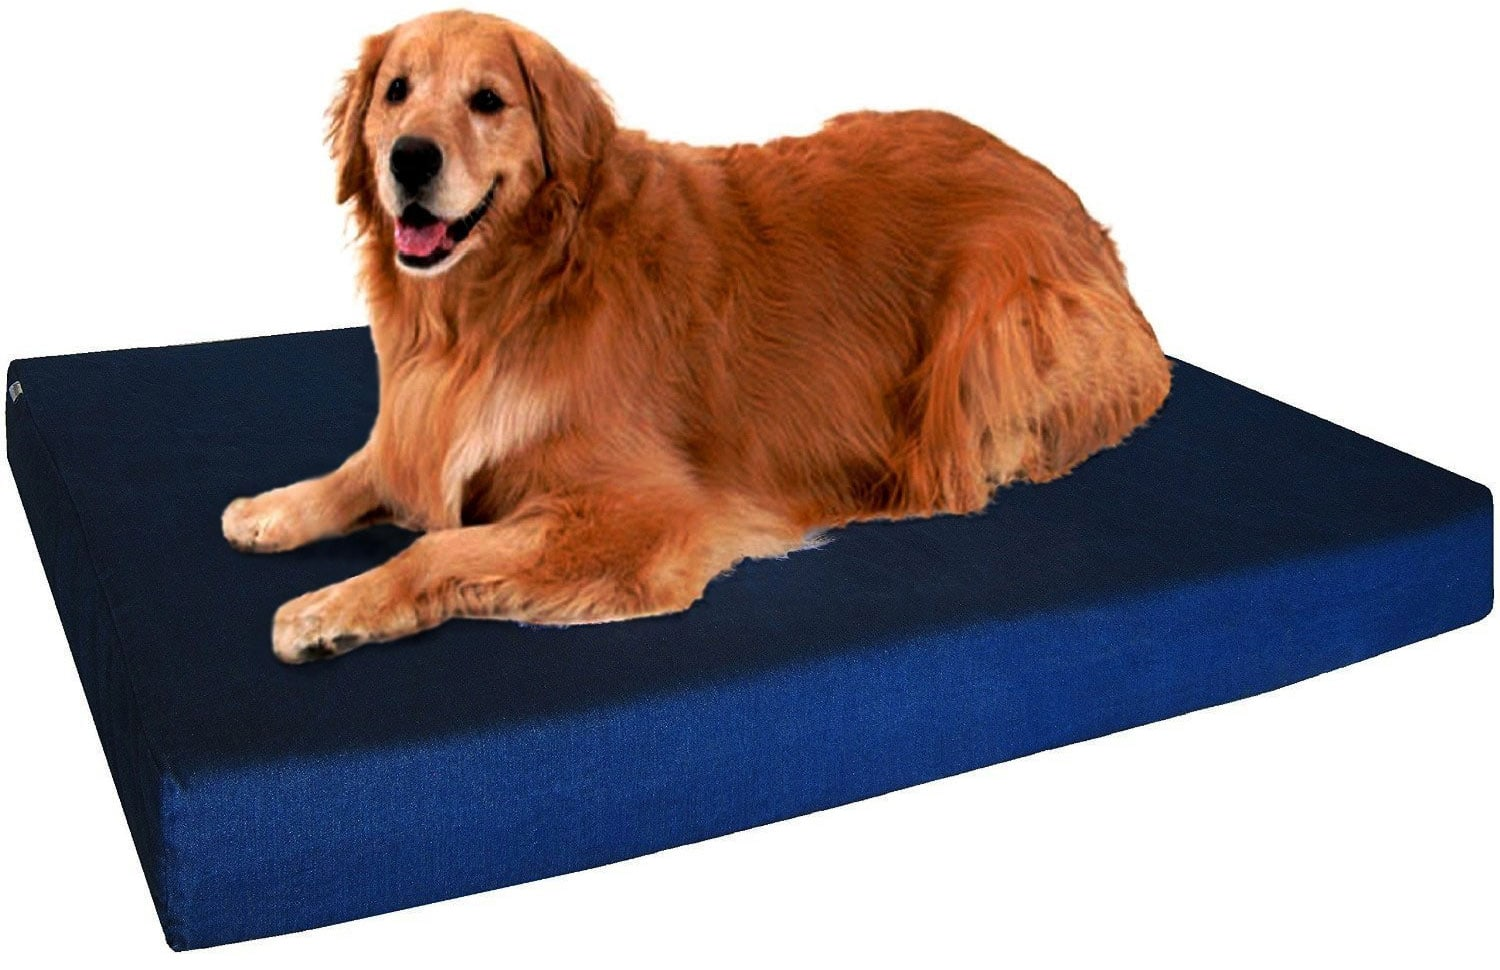 Dogbed4less orthopedic